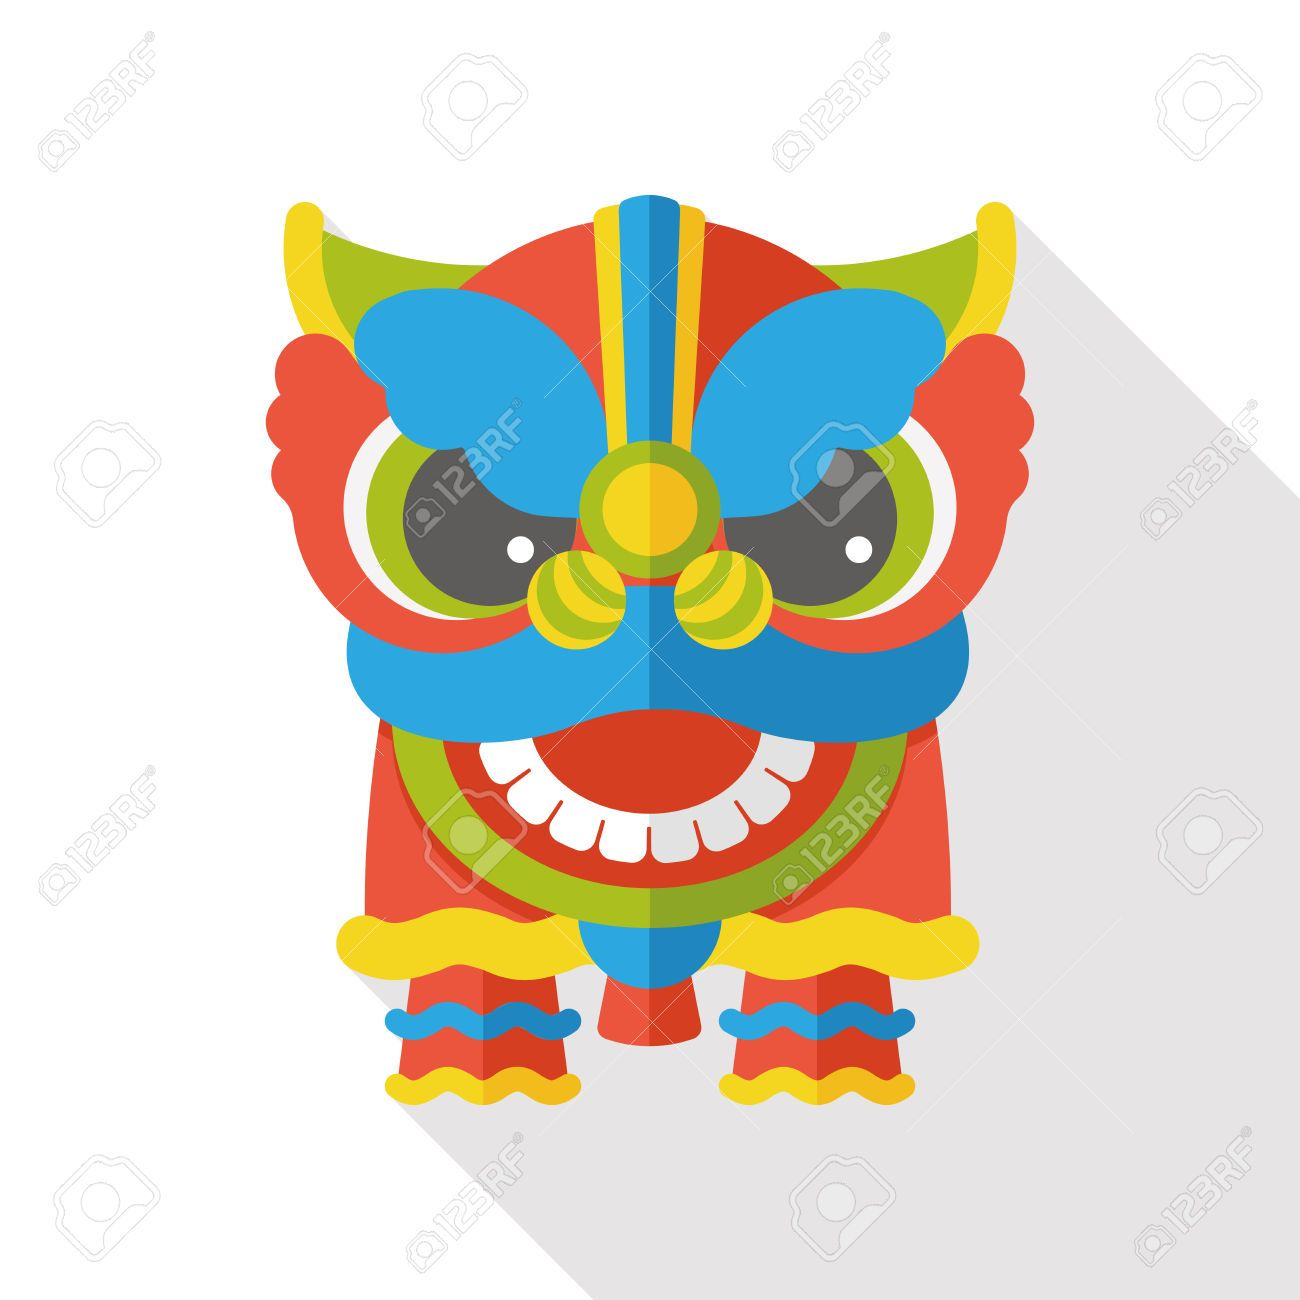 3fdb35ac5 Stock Vector in 2019 | CNY Dragons | Chinese lion dance, Chinese ...